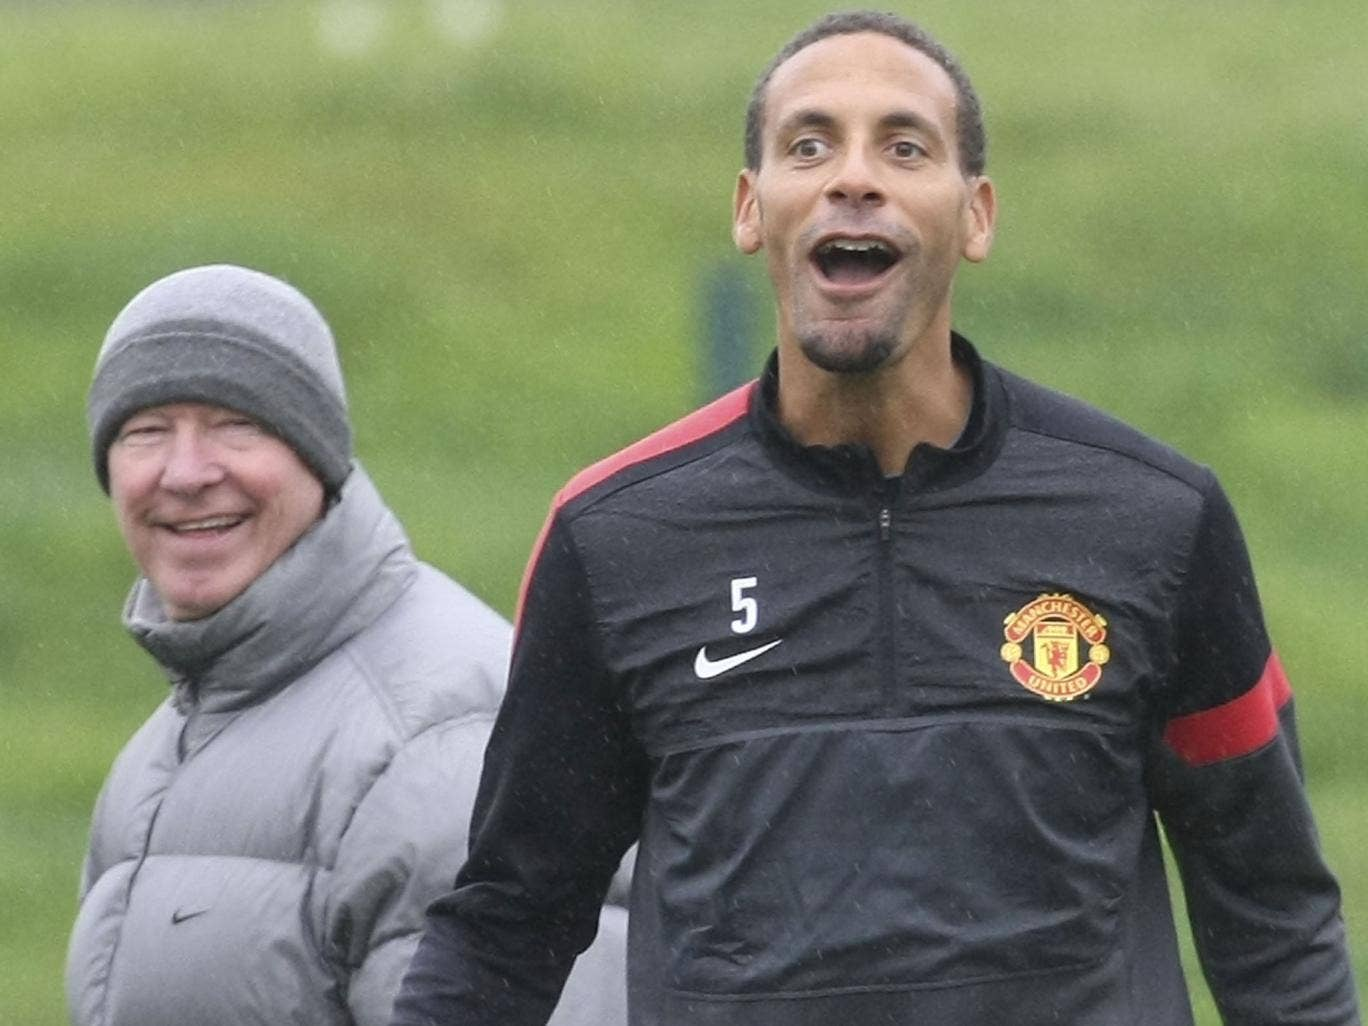 Laughing matter: Sir Alex Ferguson (left) raised concerns over Rio Ferdinand's fitness after his England recall